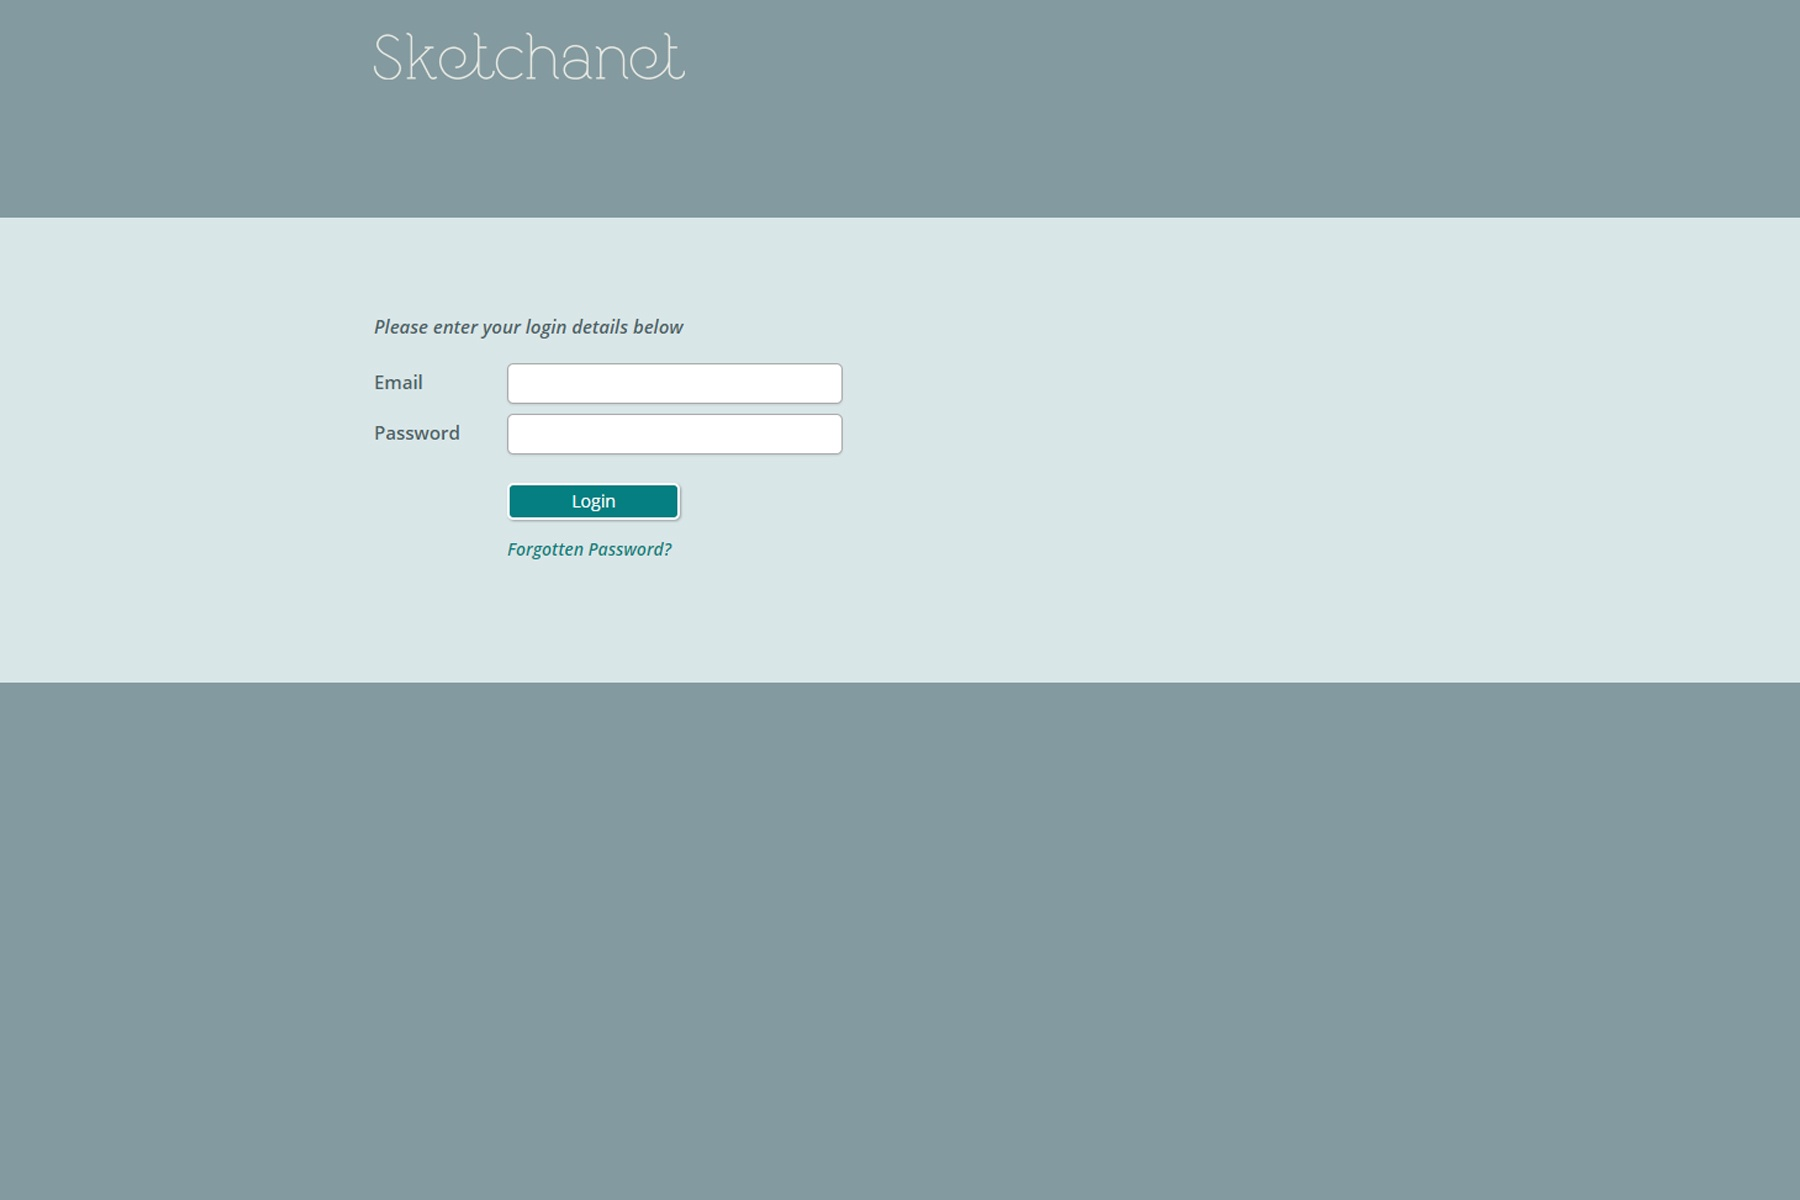 How To Log In To Sketchanet image